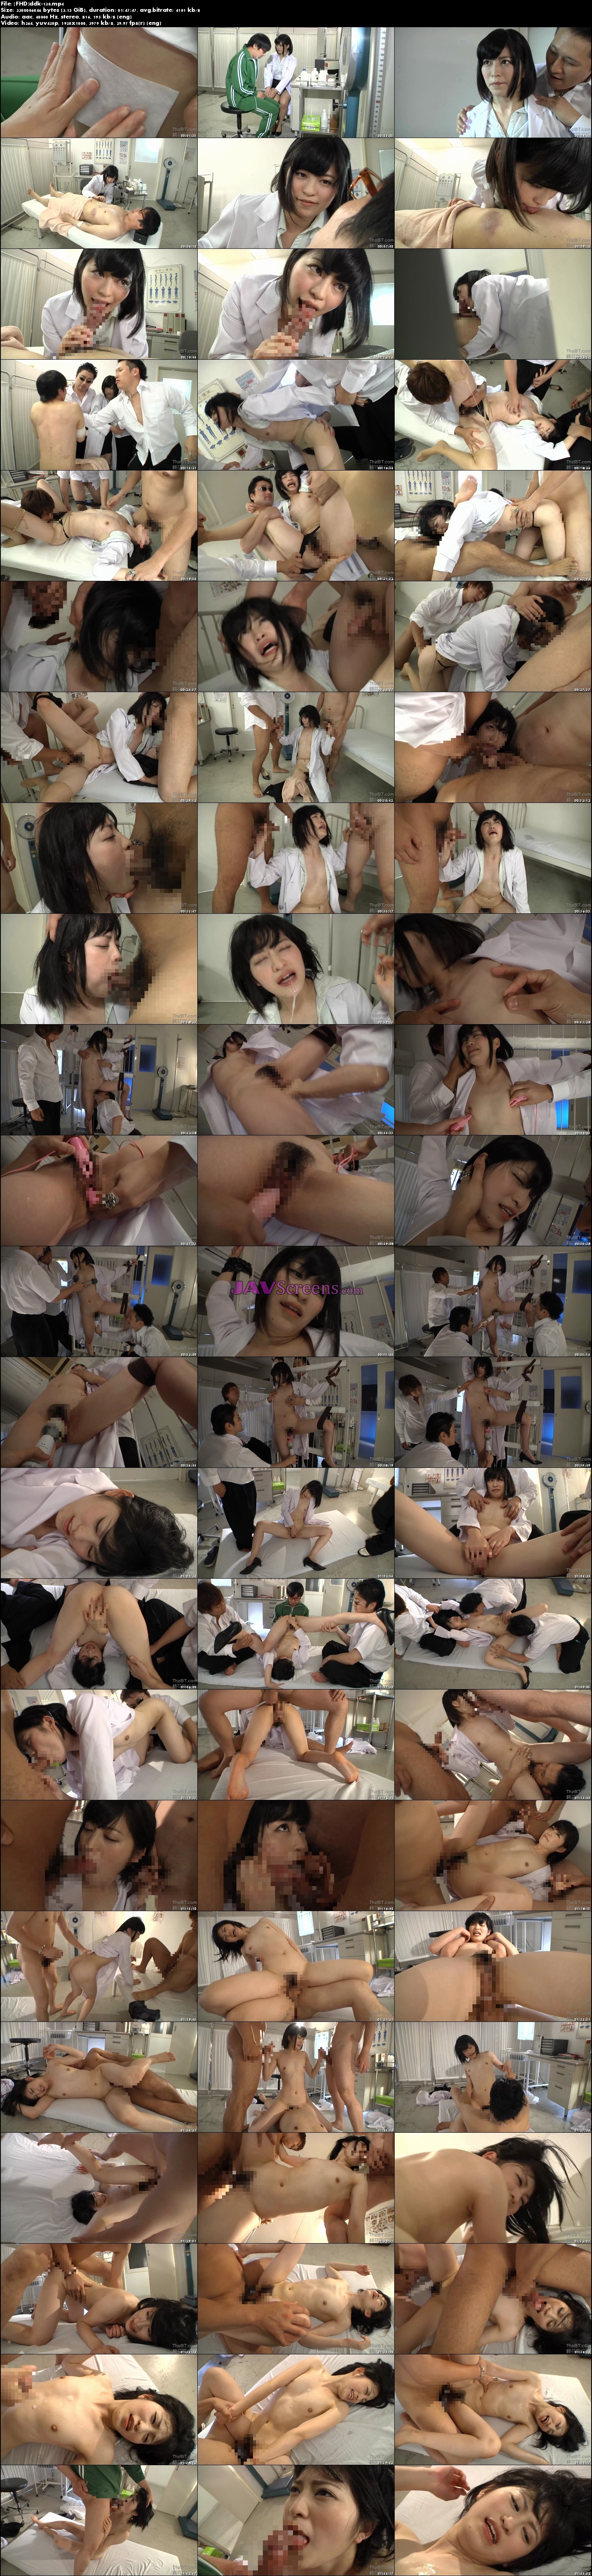 DDK-138.jpg - JAV Screenshot